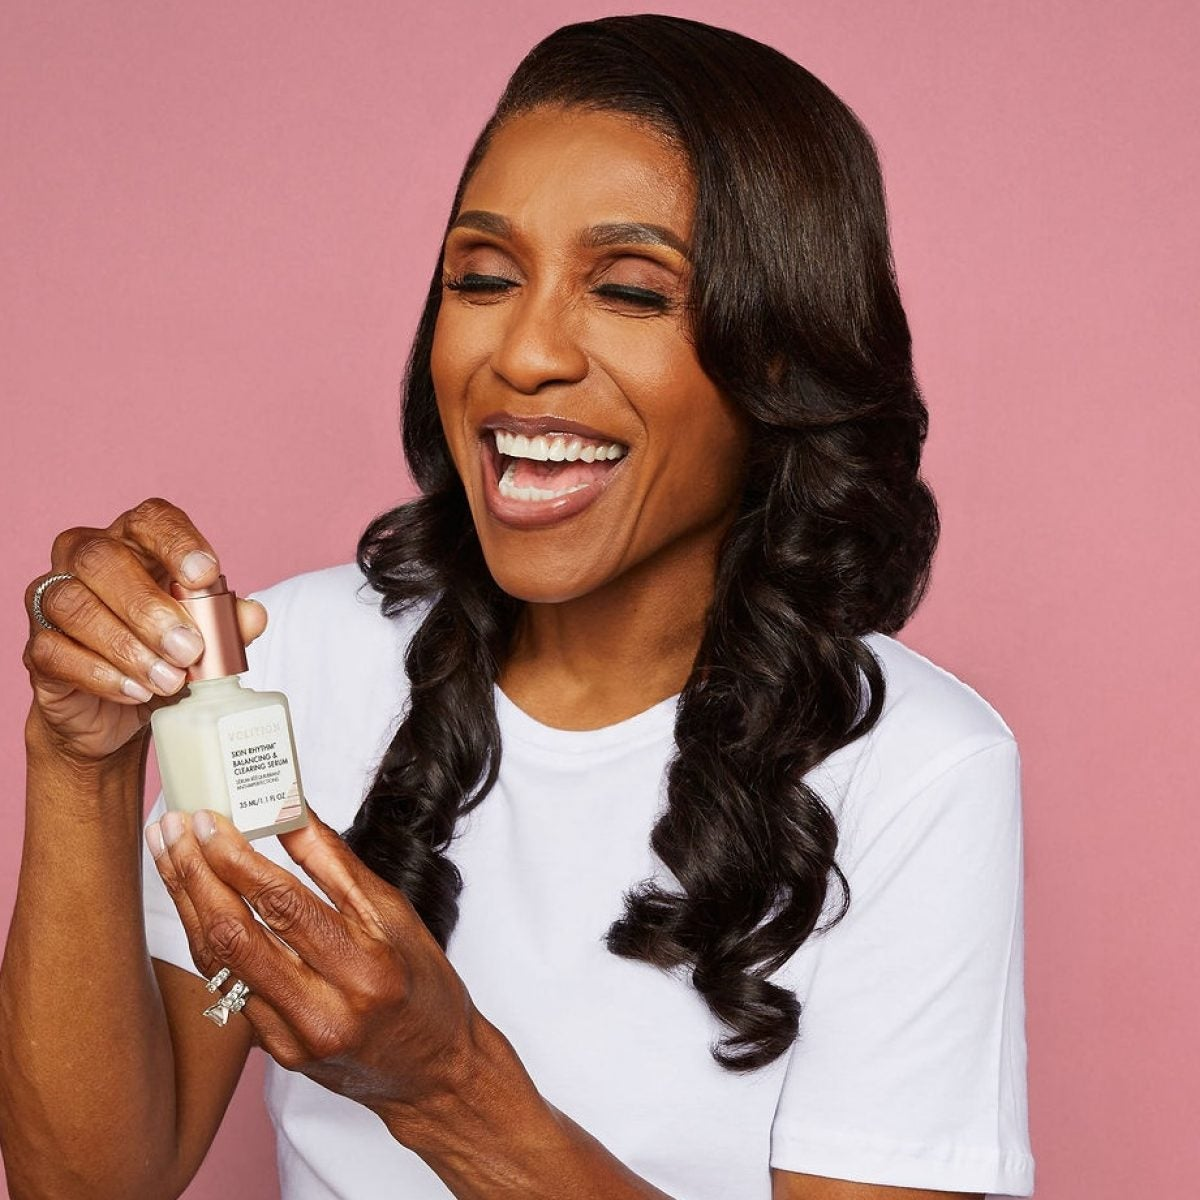 Dr. Jackie Walters On Volition's Latest Serum, Hormonal Acne And PCOM